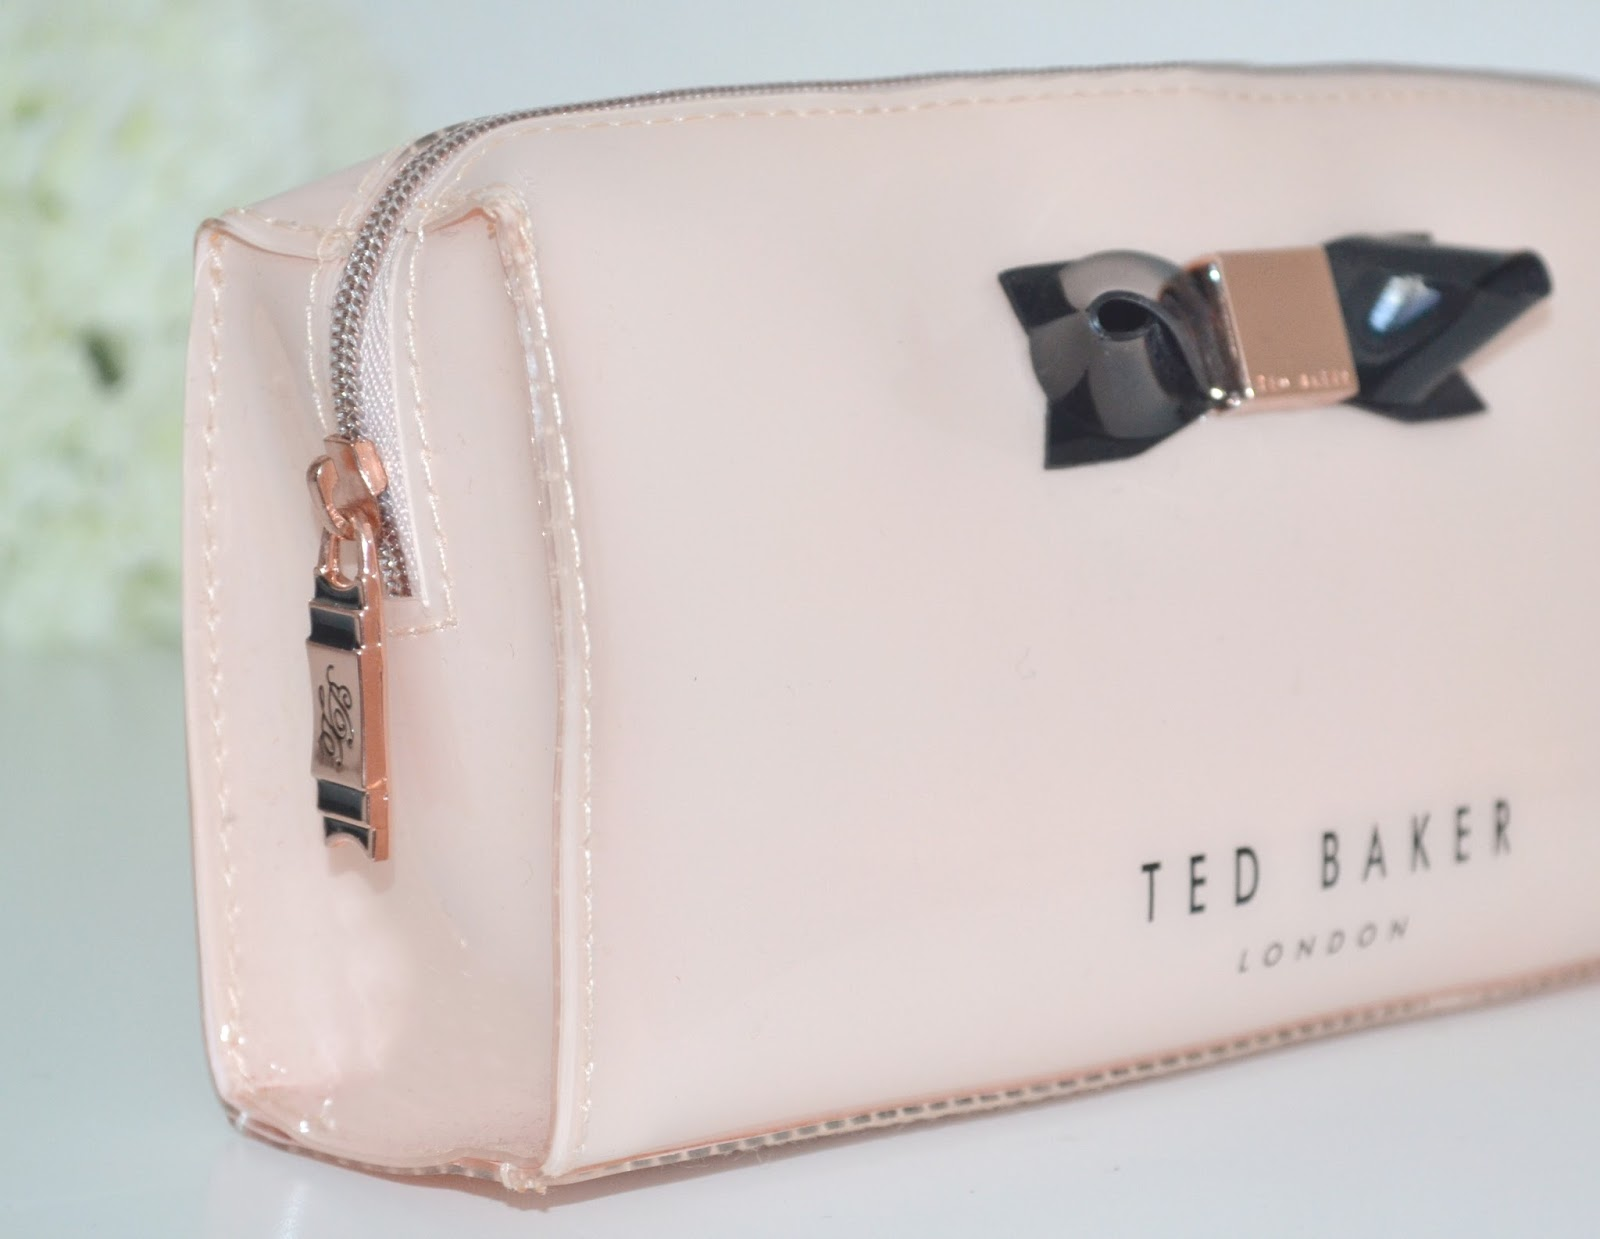 A makeup bag is an organizer that keeps all your makeup in one place – in a neat and organized way. There are loads of options, styles, and sizes of makeup bags to choose from.